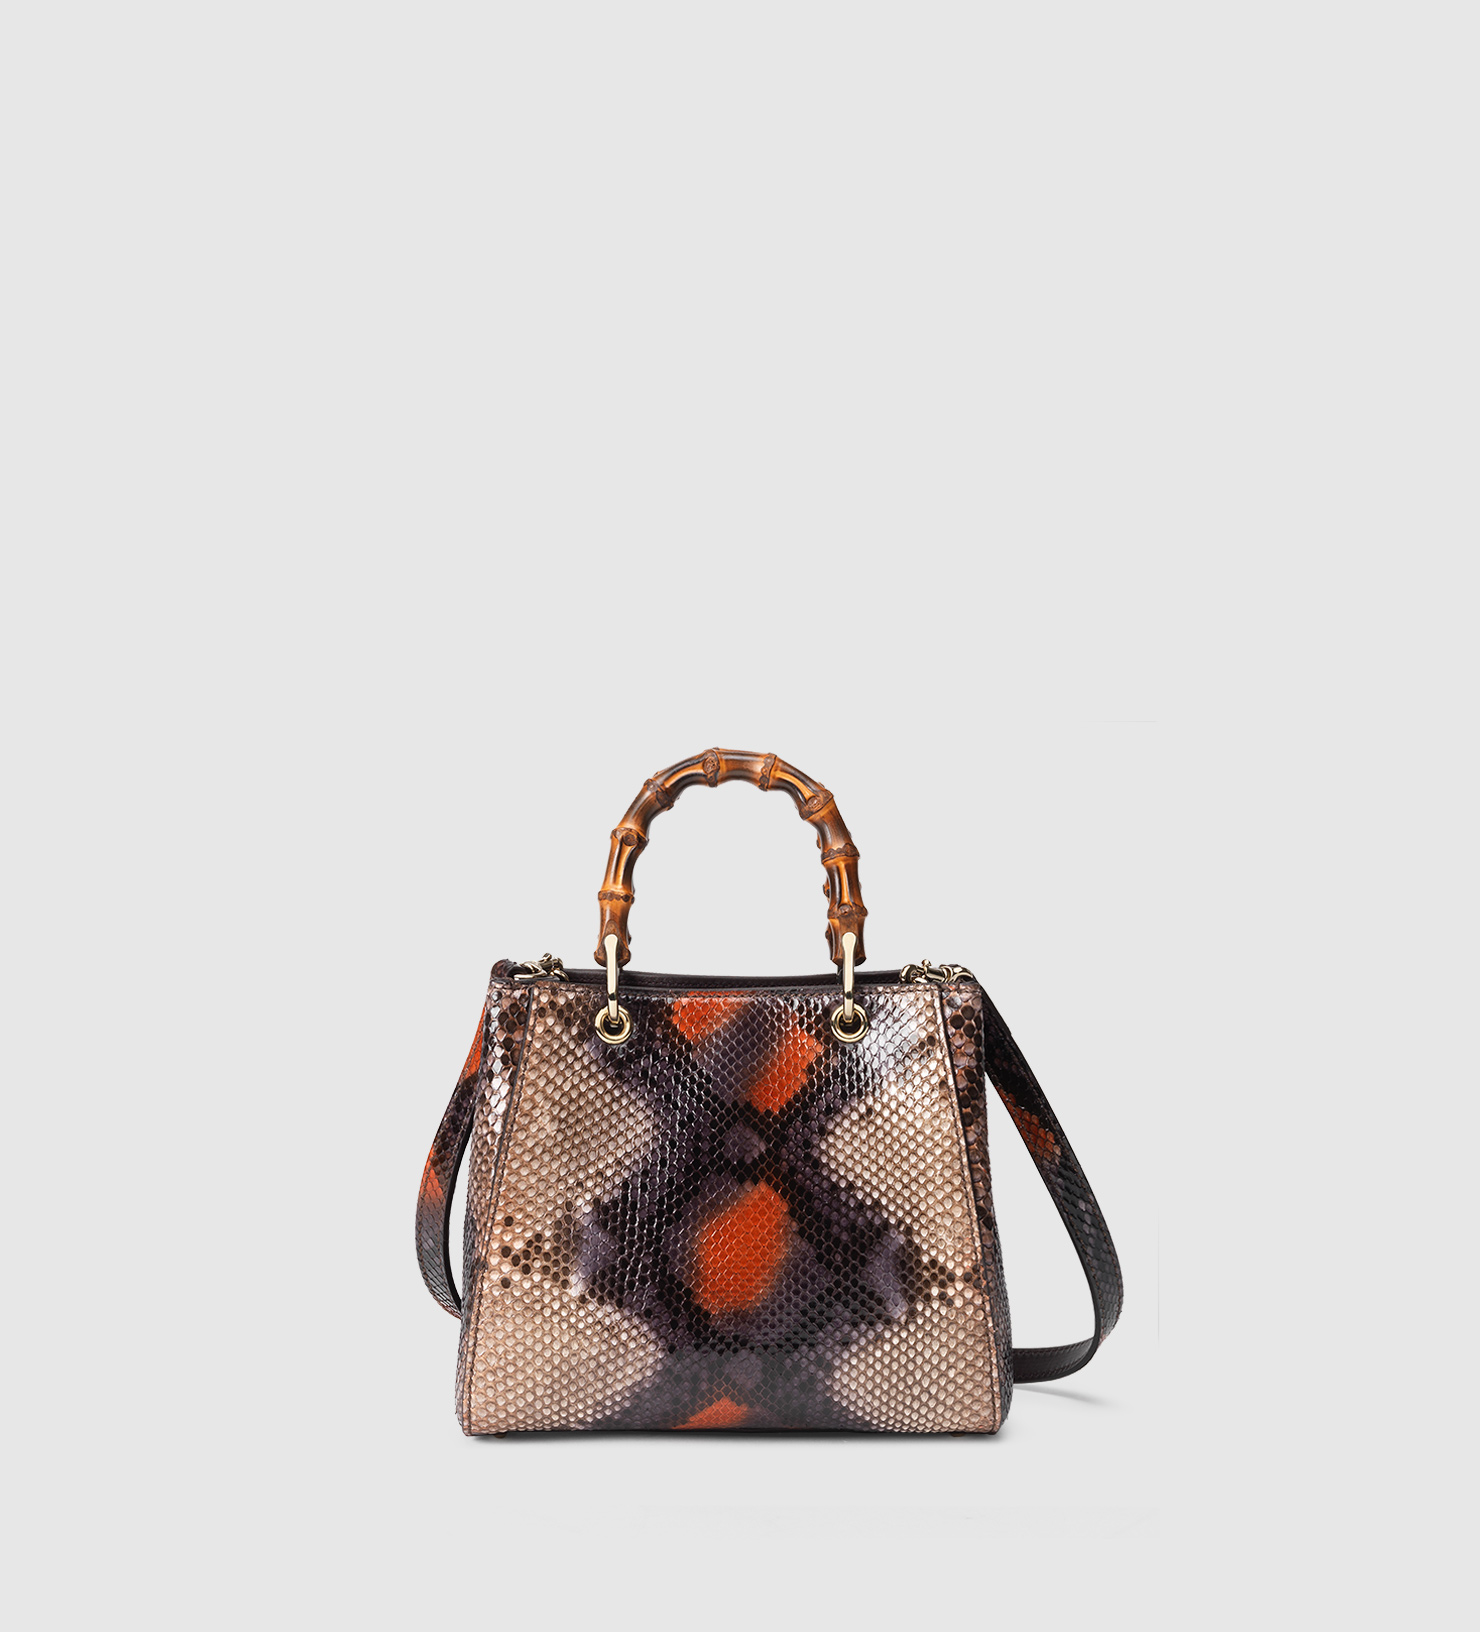 Gucci Dionysus Mini Python Bamboo-Handle Bag Wlqe97dw